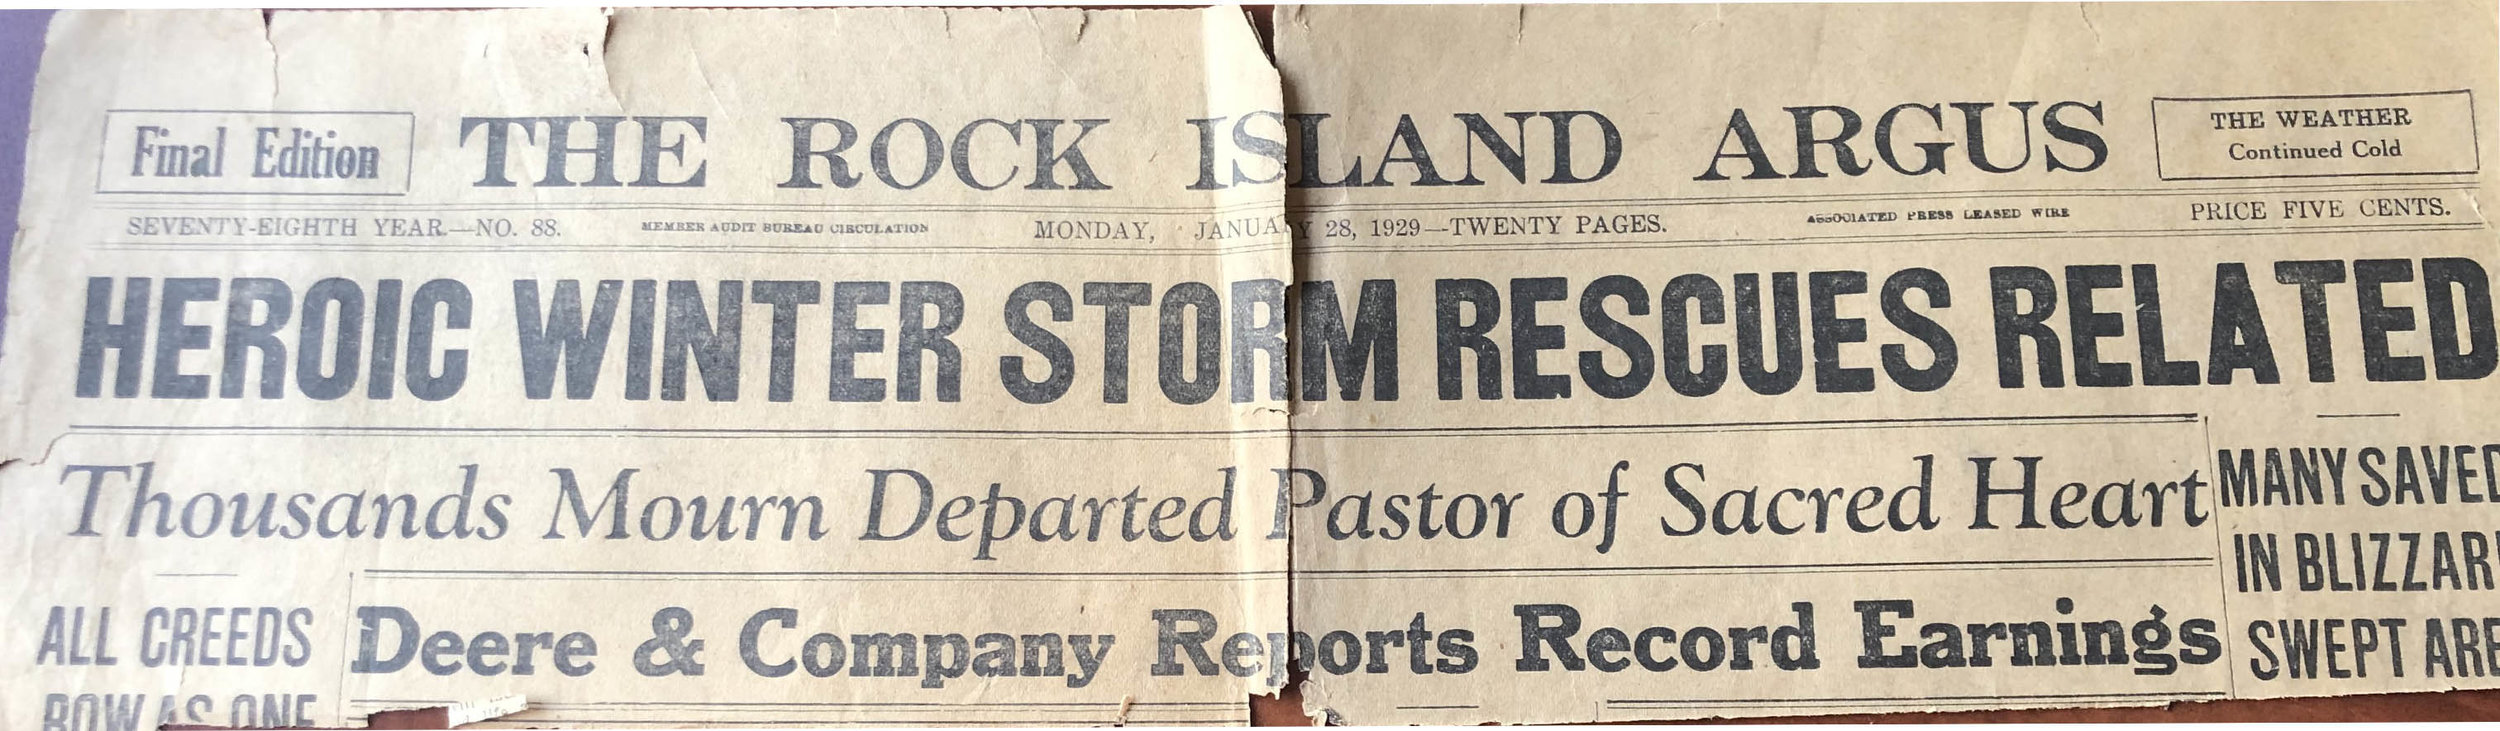 When Sacred Heart pastors died, it was front page news in 1929!